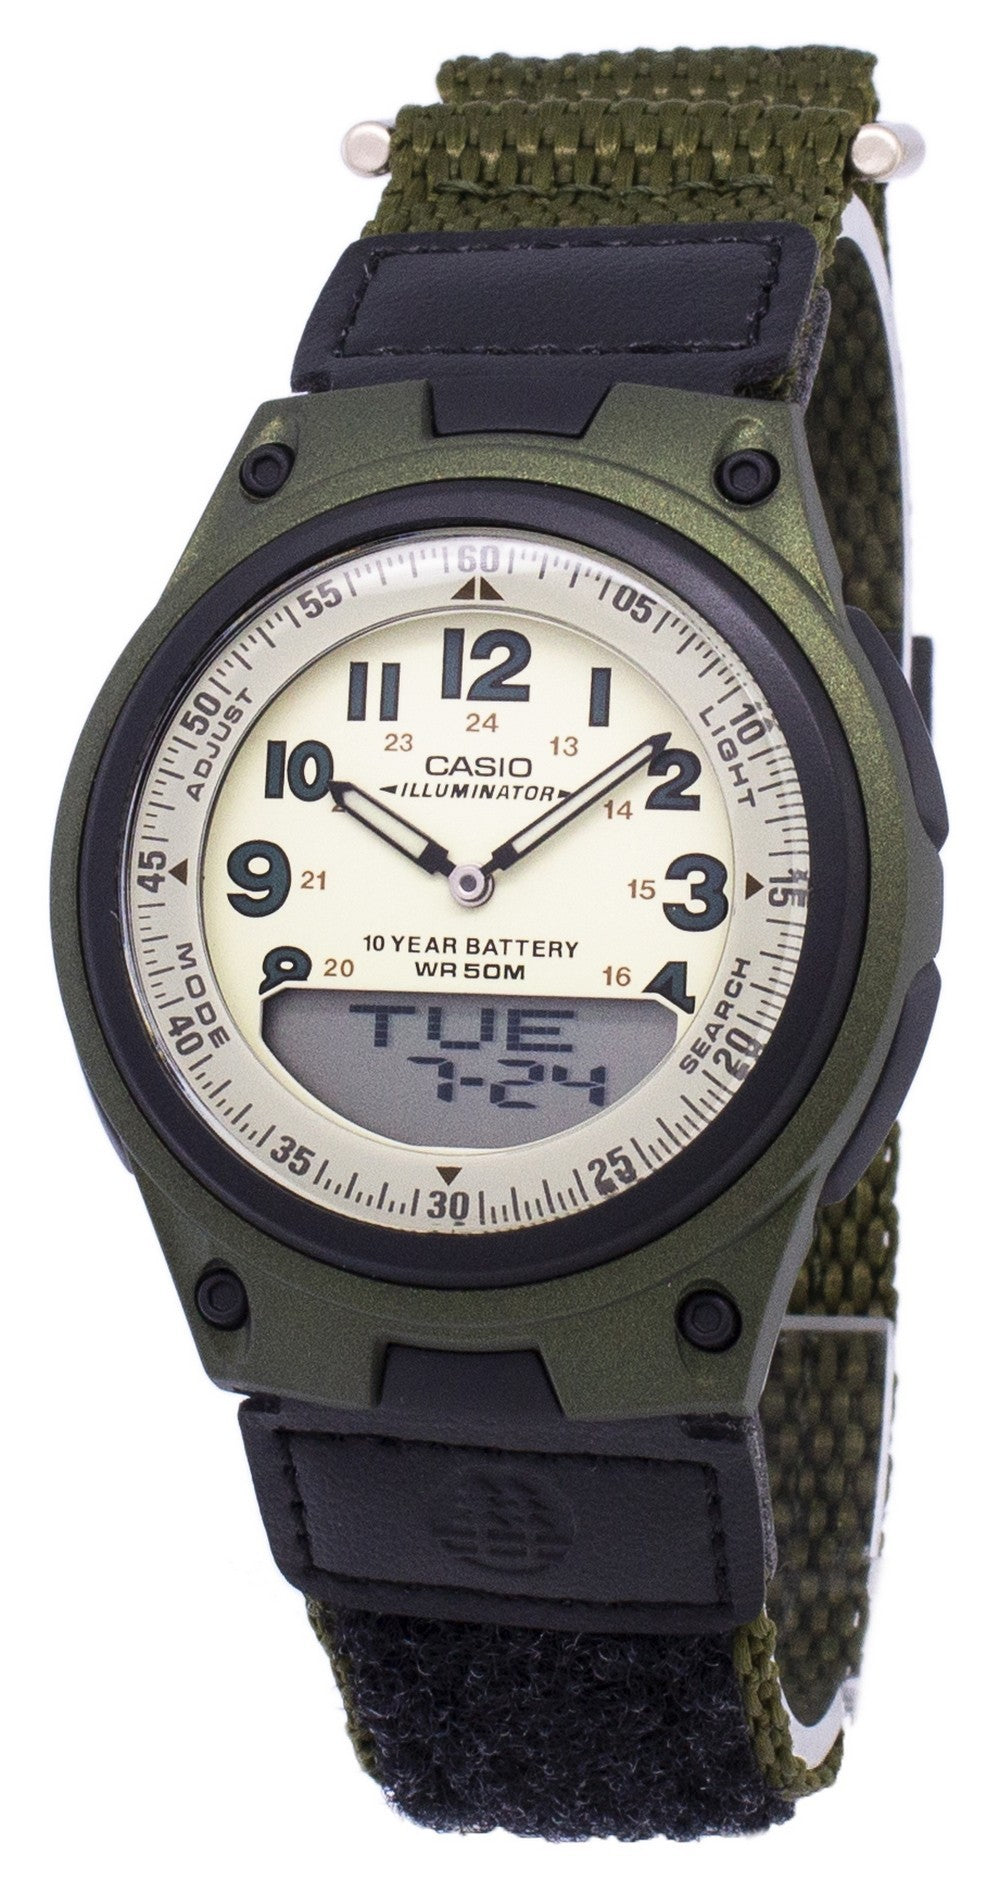 Casio Analog Digital Telememo Illuminator AW-80V-3BVDF AW80V-3BVDF Men's Watch